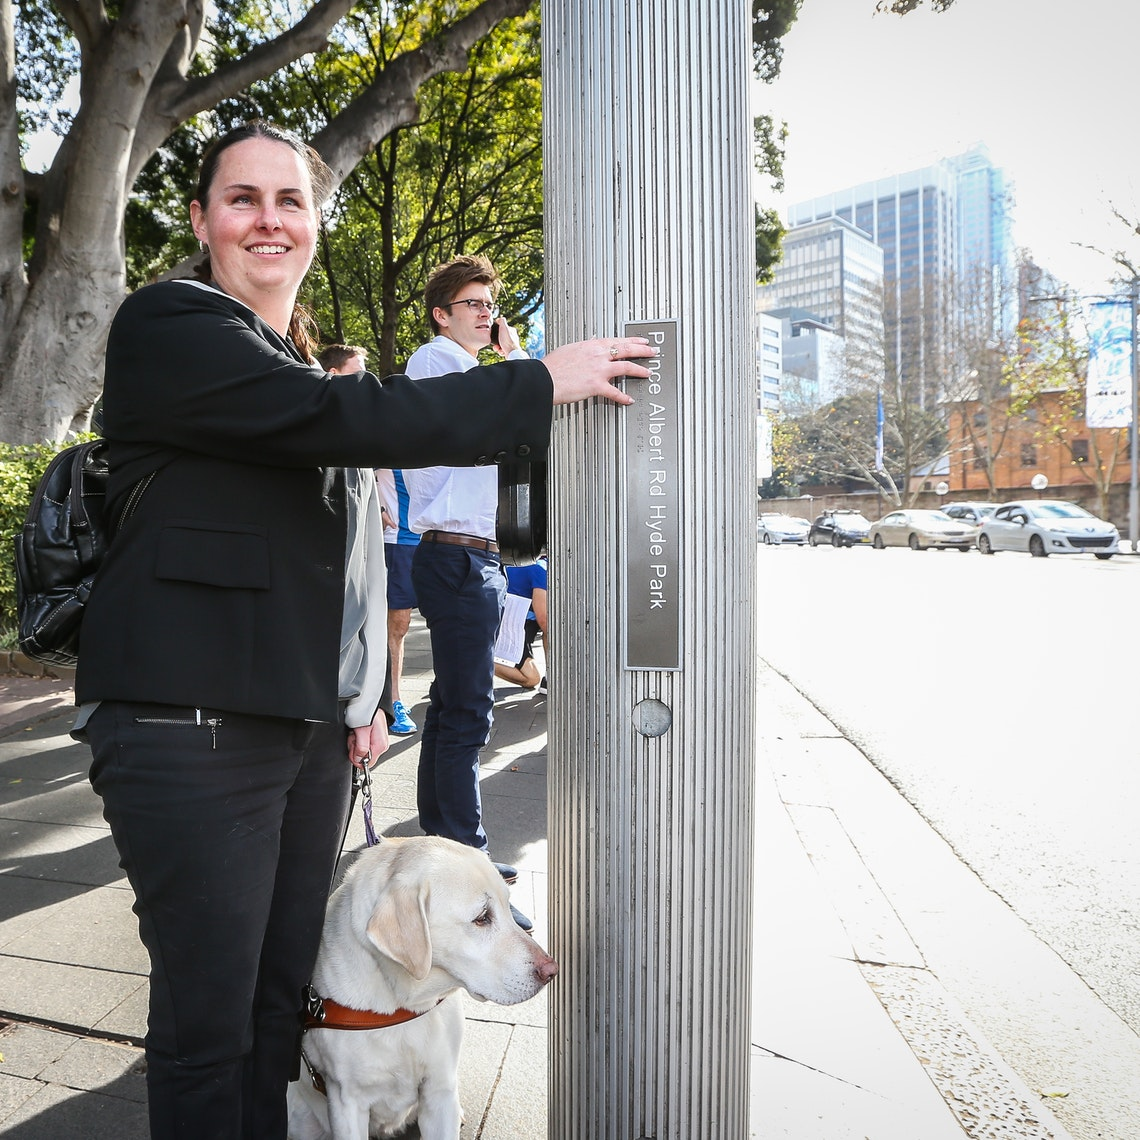 A woman with a guide dog uses a tactile street sign at a pedestrian crossing.